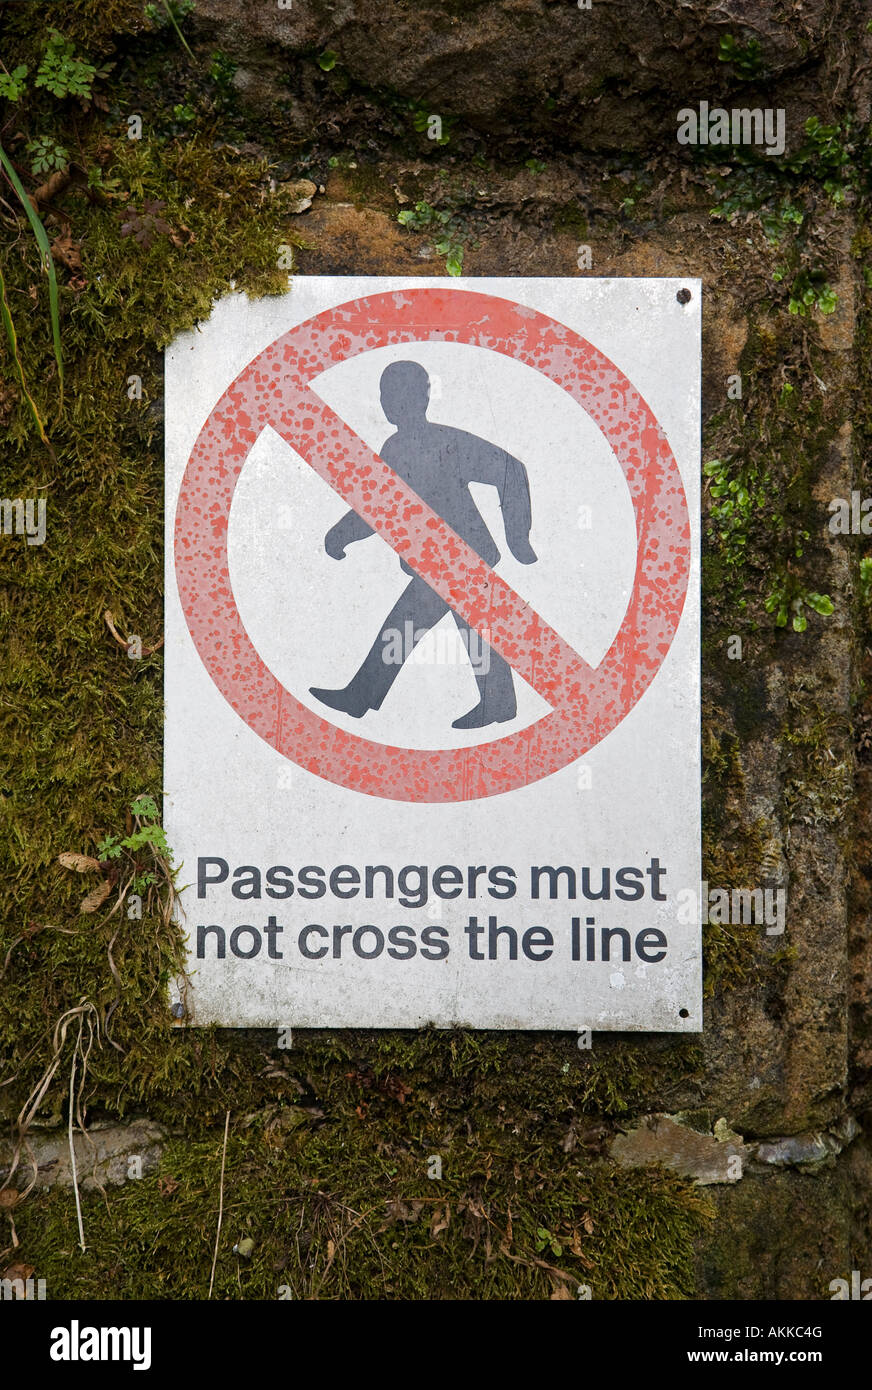 Safety sign on railway platform 'Passengers must not cross the line' - Stock Image